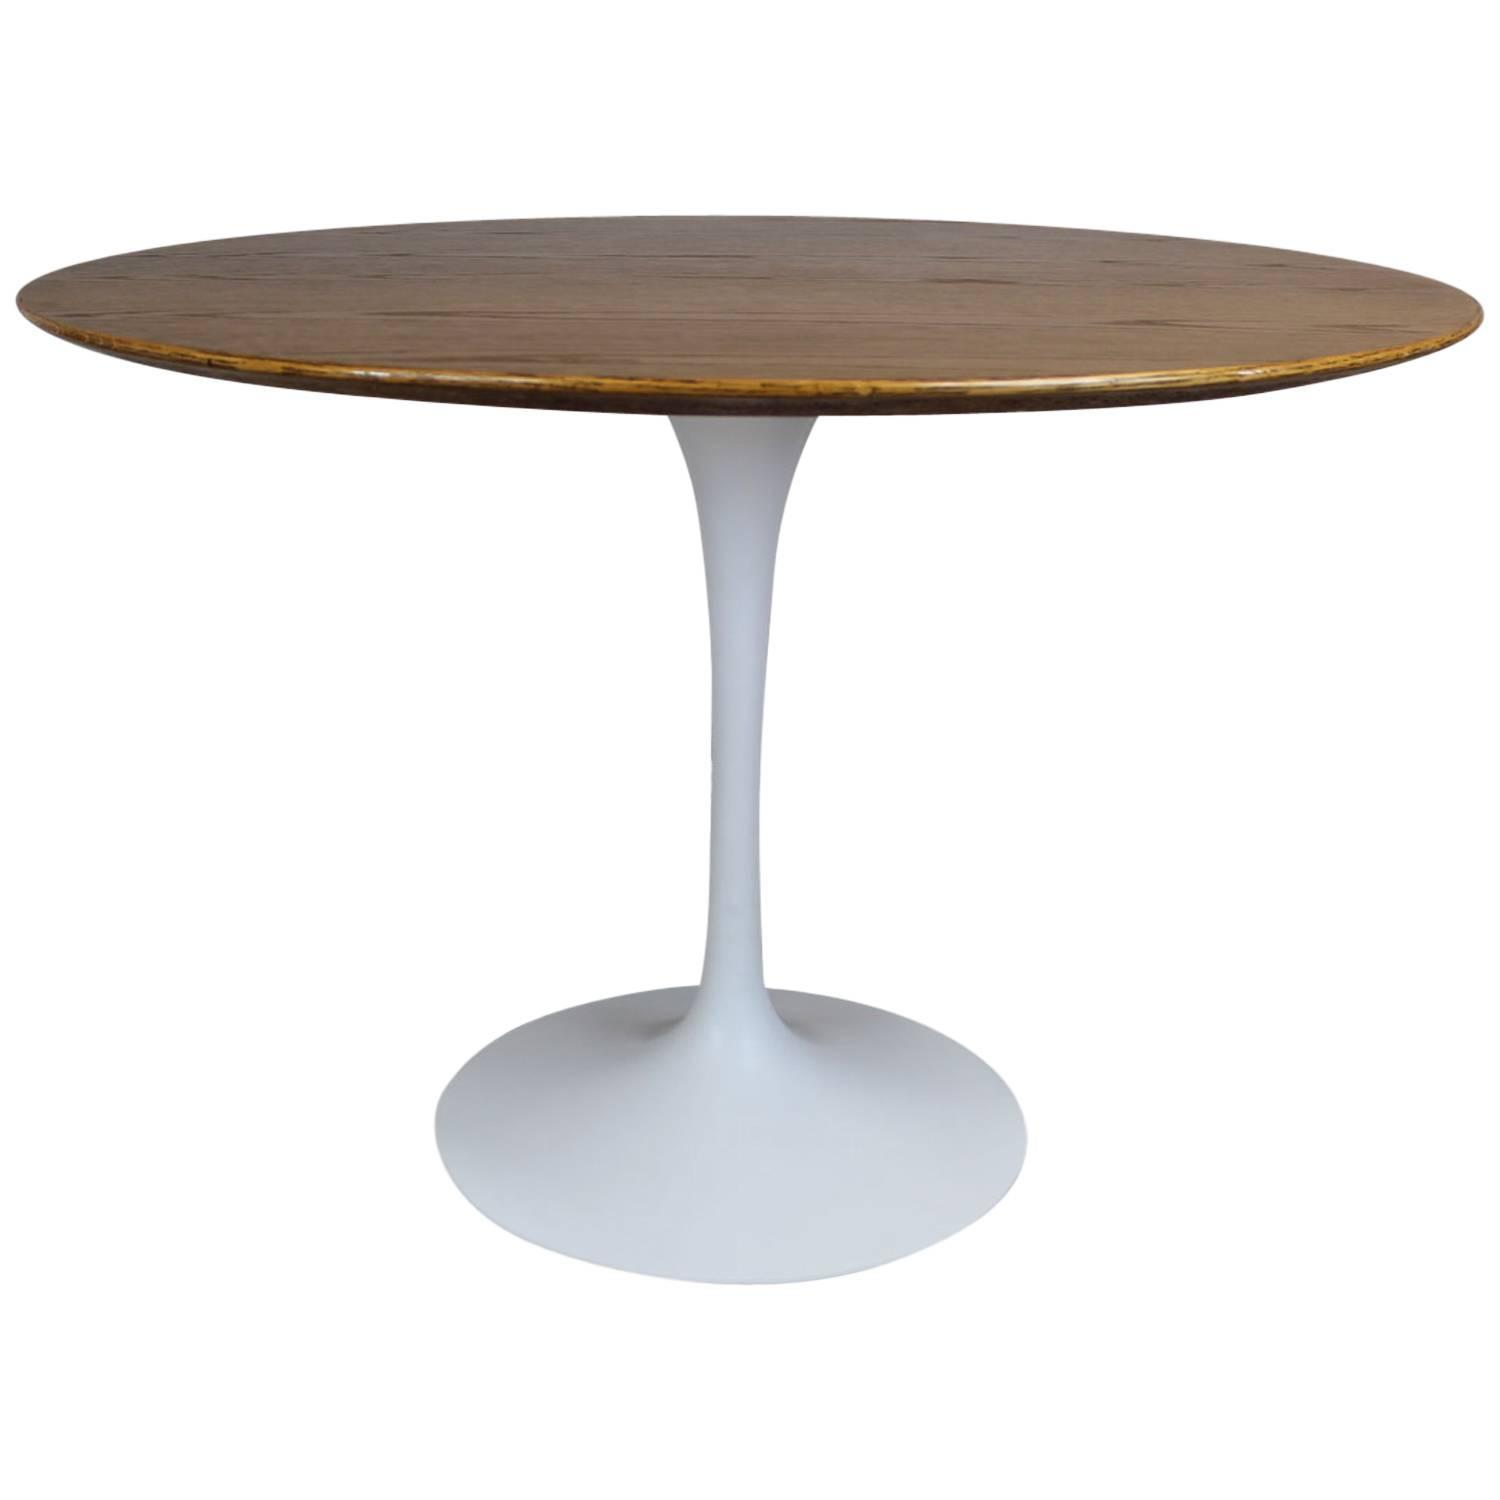 eero saarinen tulip base dining table at 1stdibs. Black Bedroom Furniture Sets. Home Design Ideas